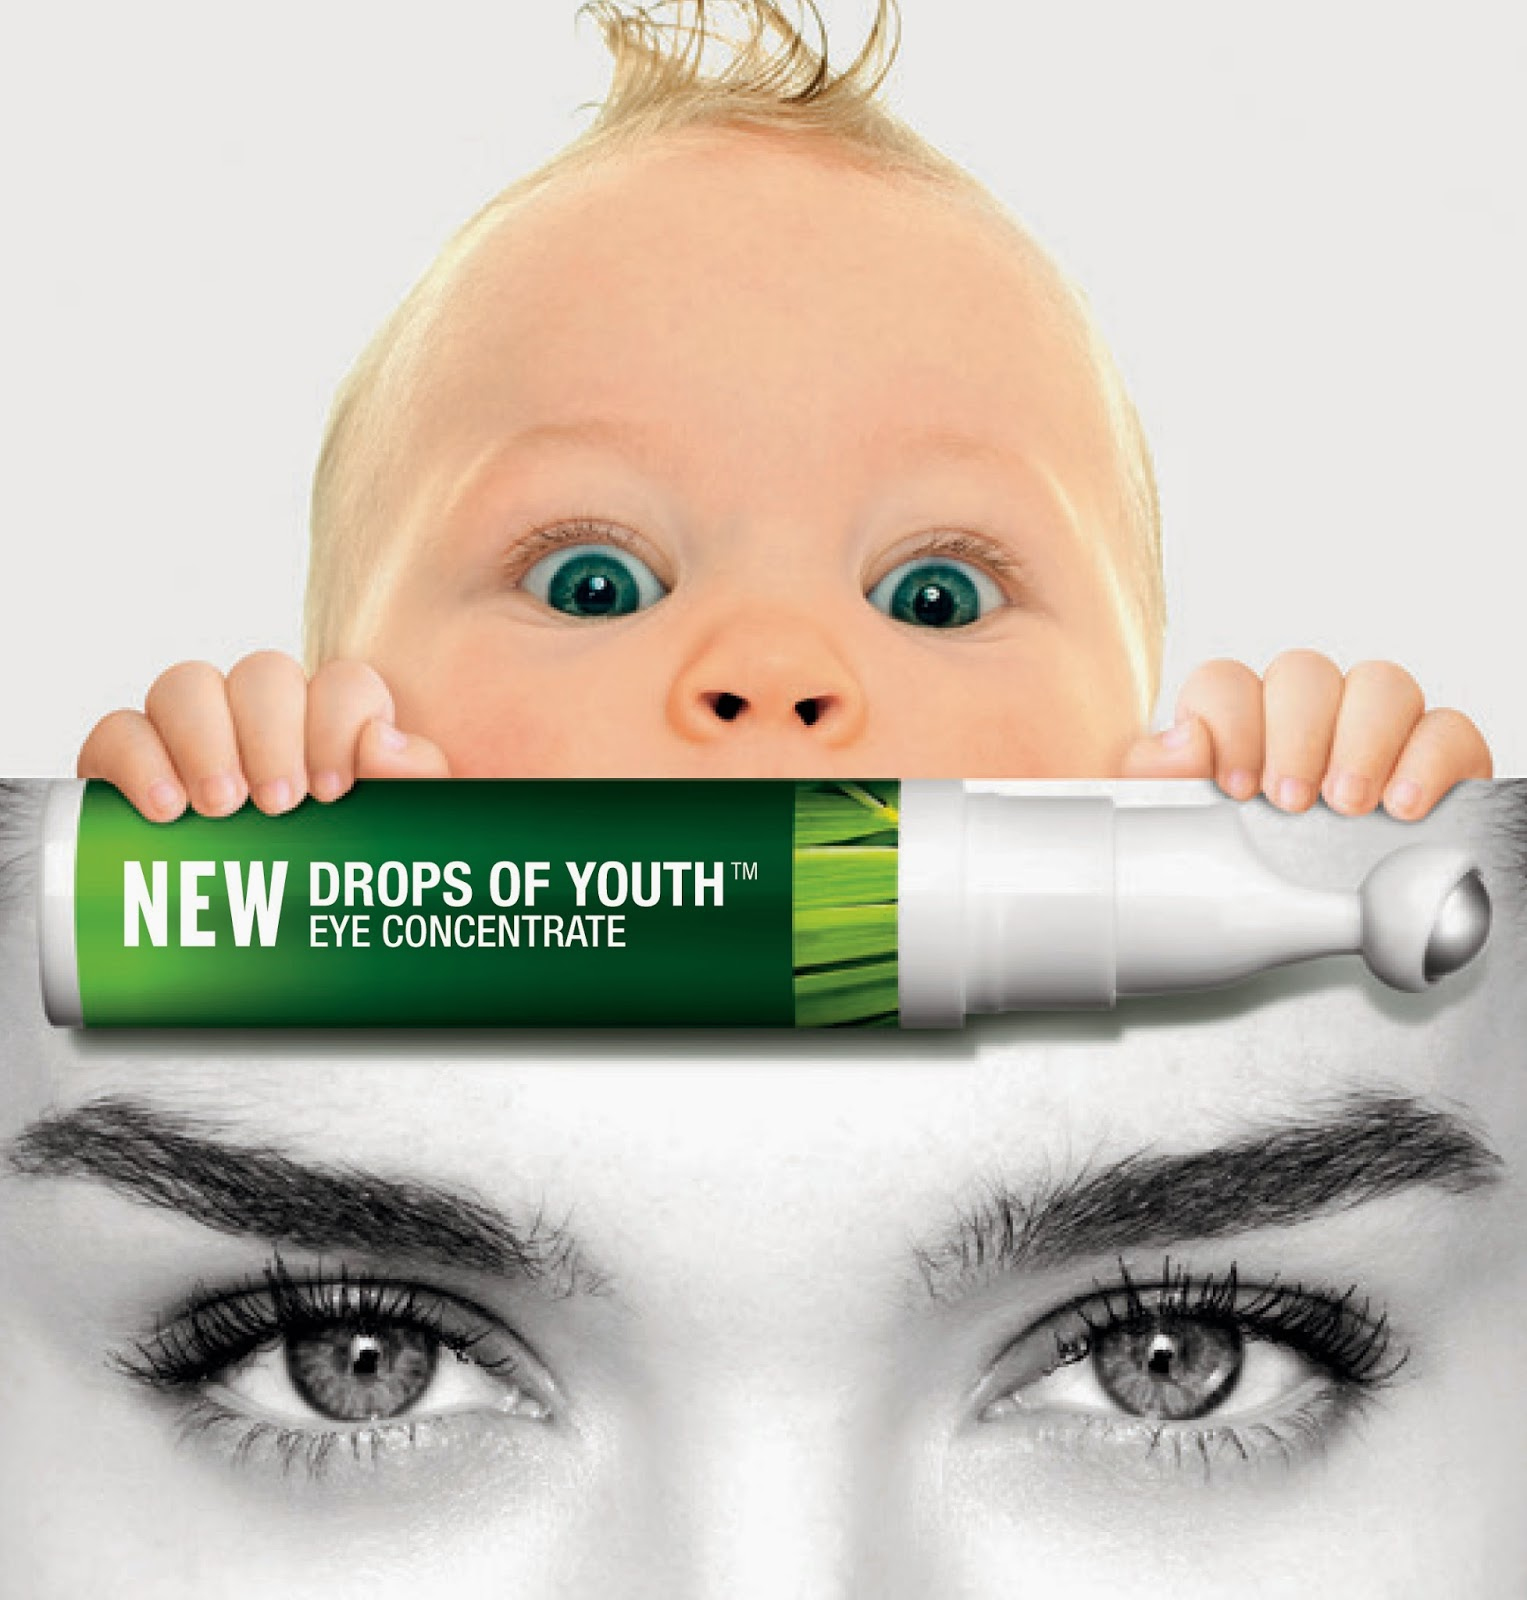 The Body Shop Drops of Youth Eye Concentrate - Pictures, Price and How To Use